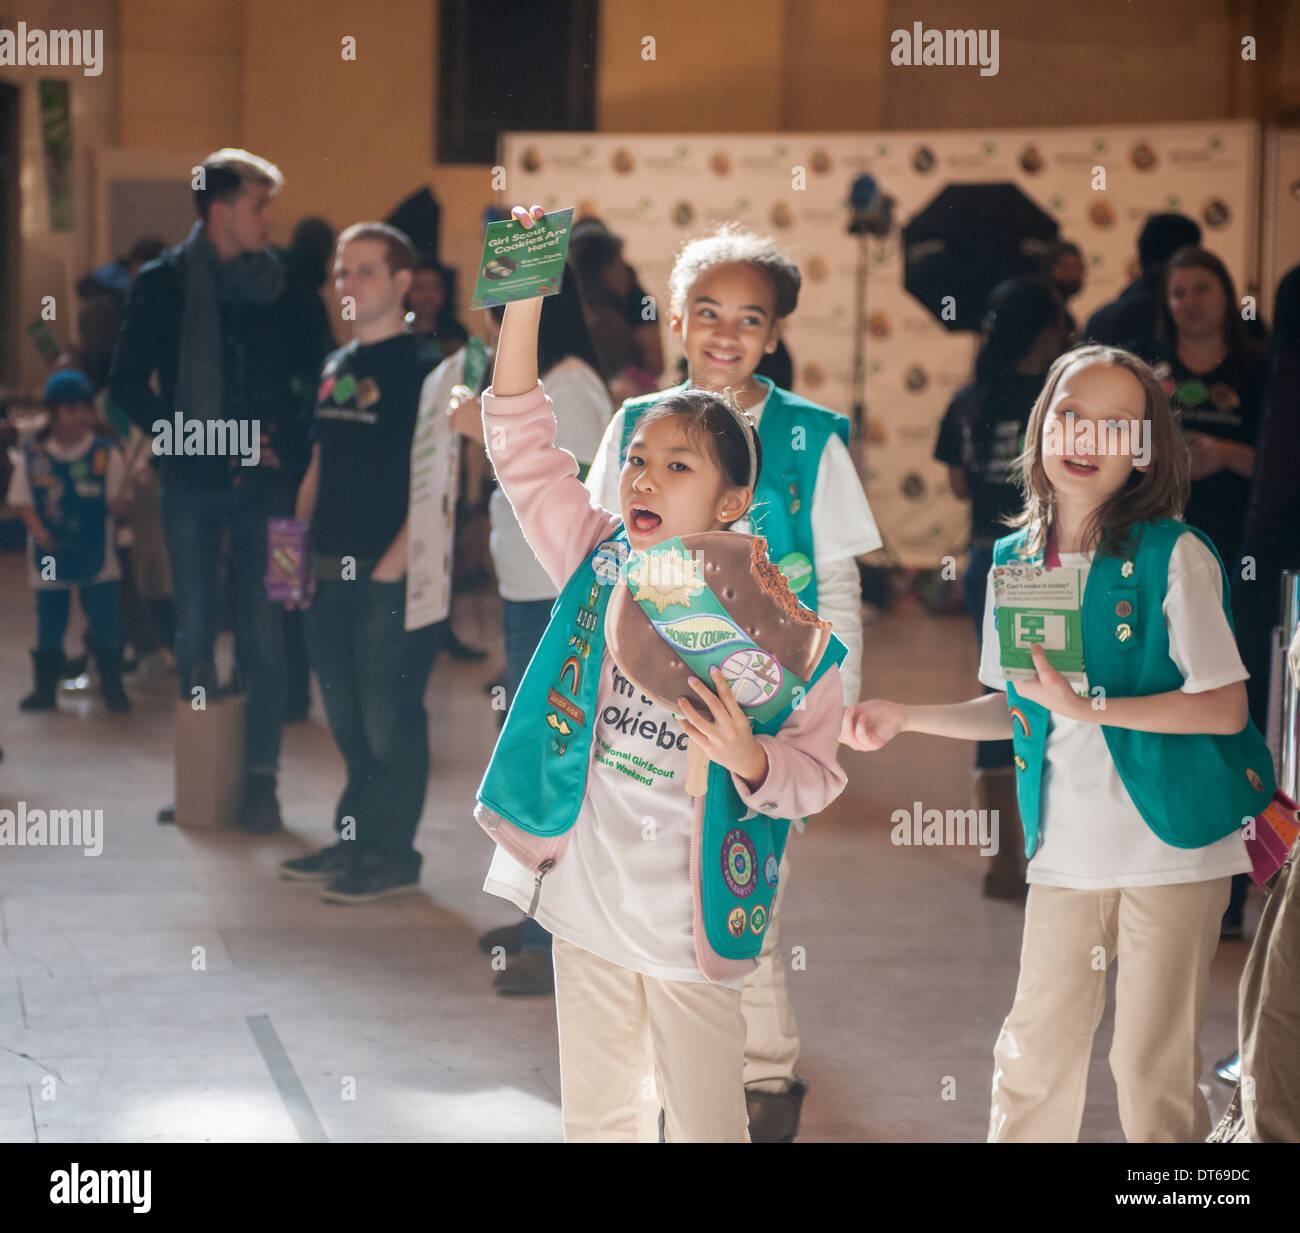 Girl Scouts mark the start of National Girl Scout Cookie Weekend in Vanderbilt Hall in Grand Central Terminal in New York - Stock Image